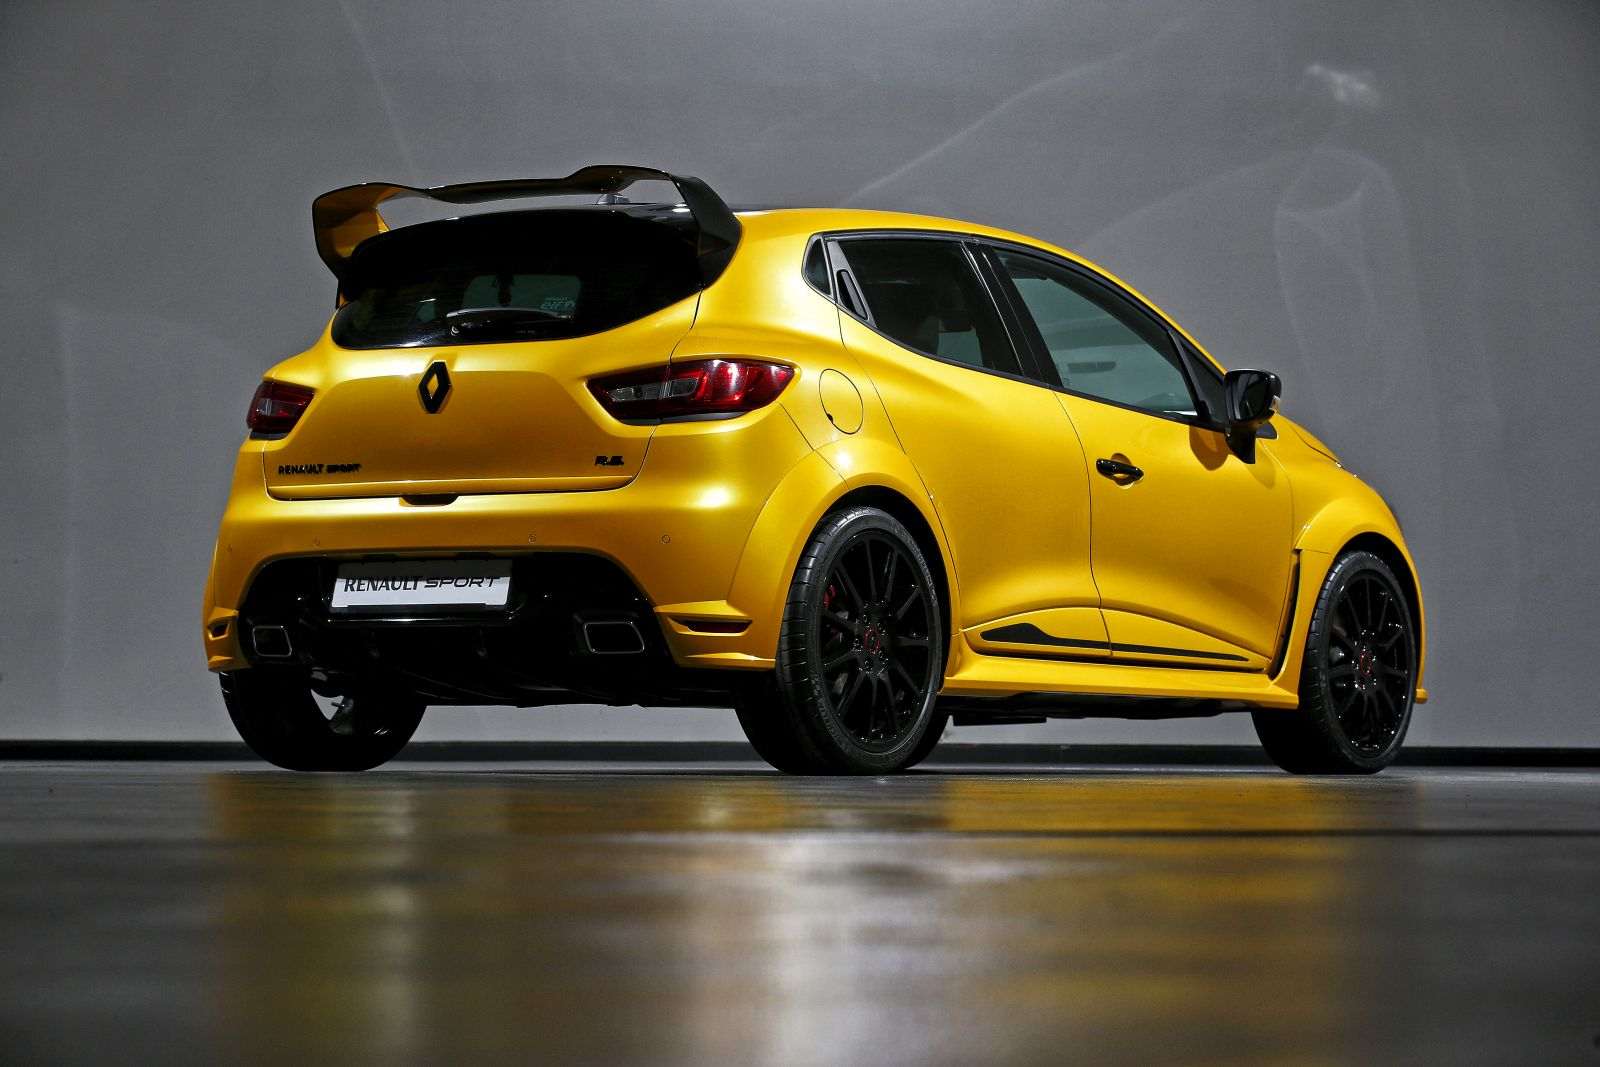 renault clio r concept celebrates renault sport s 40th anniversary and return to formula 1. Black Bedroom Furniture Sets. Home Design Ideas